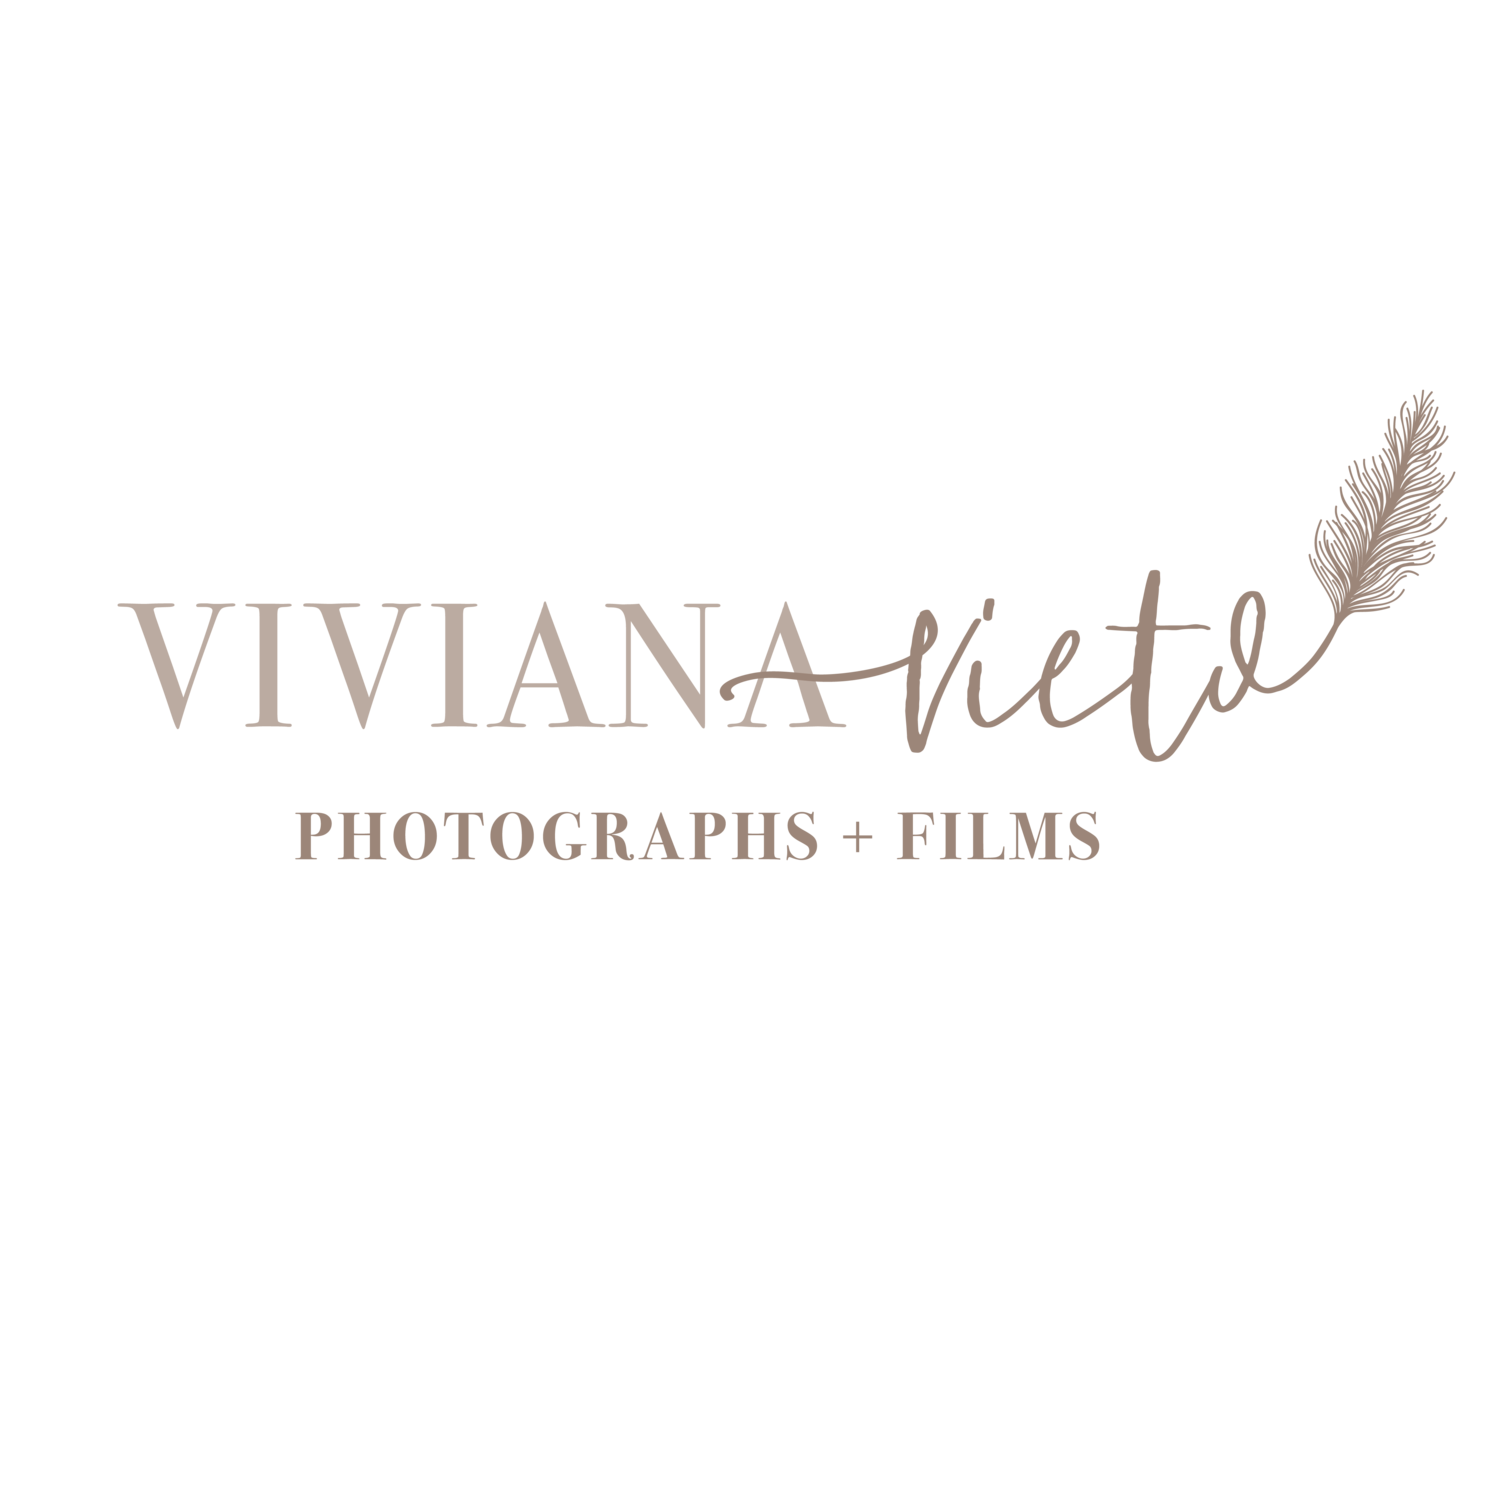 Viviana Vieto Photography